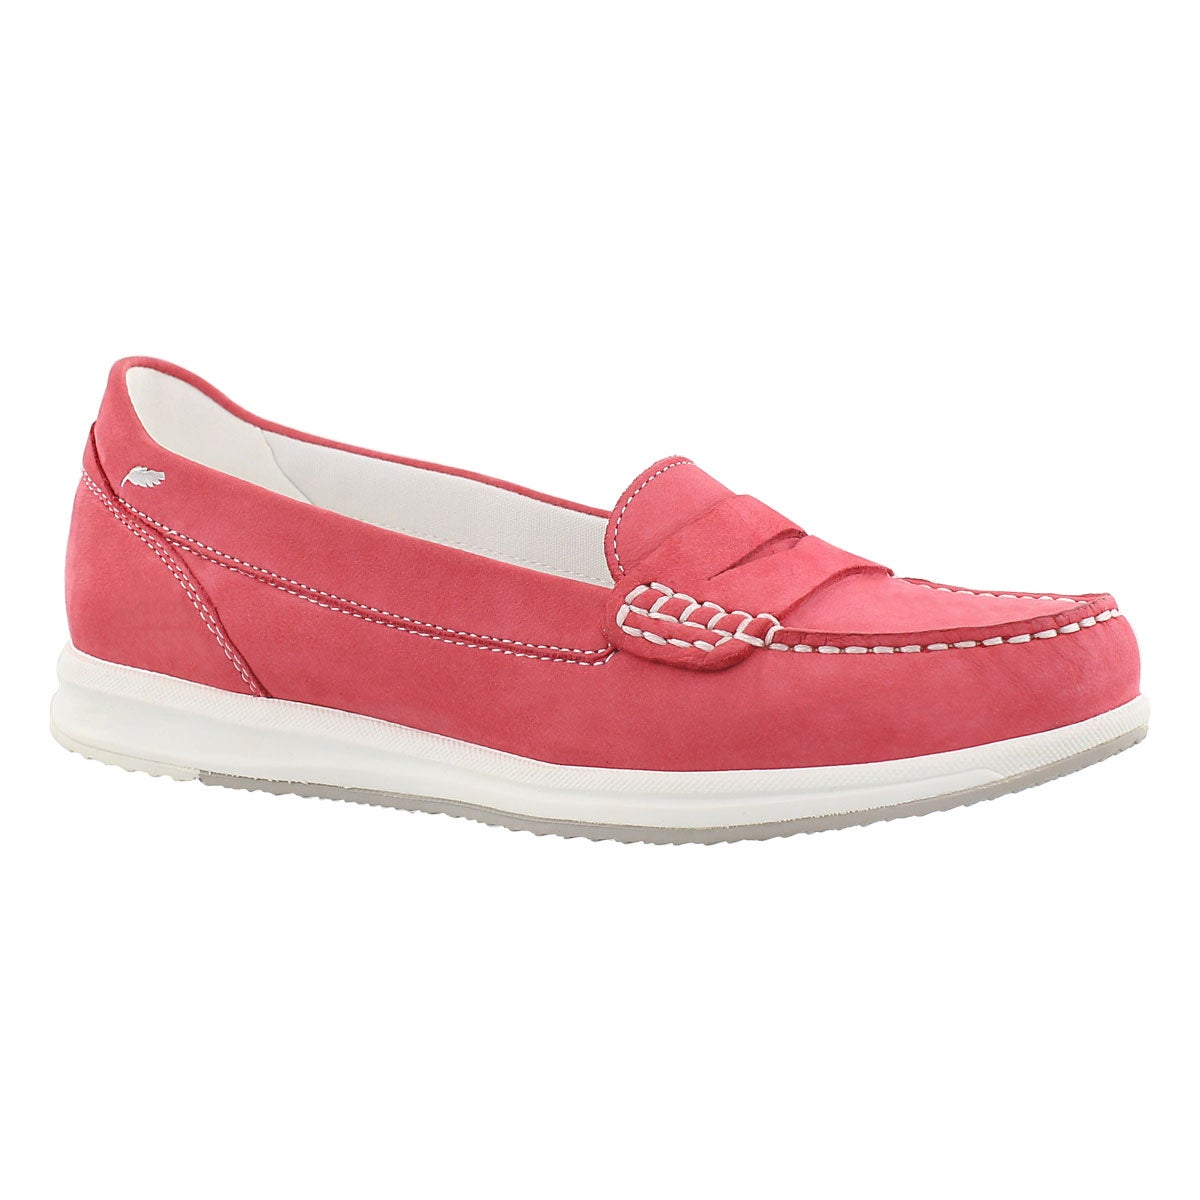 Women's AVERY coral slip on casual loafers